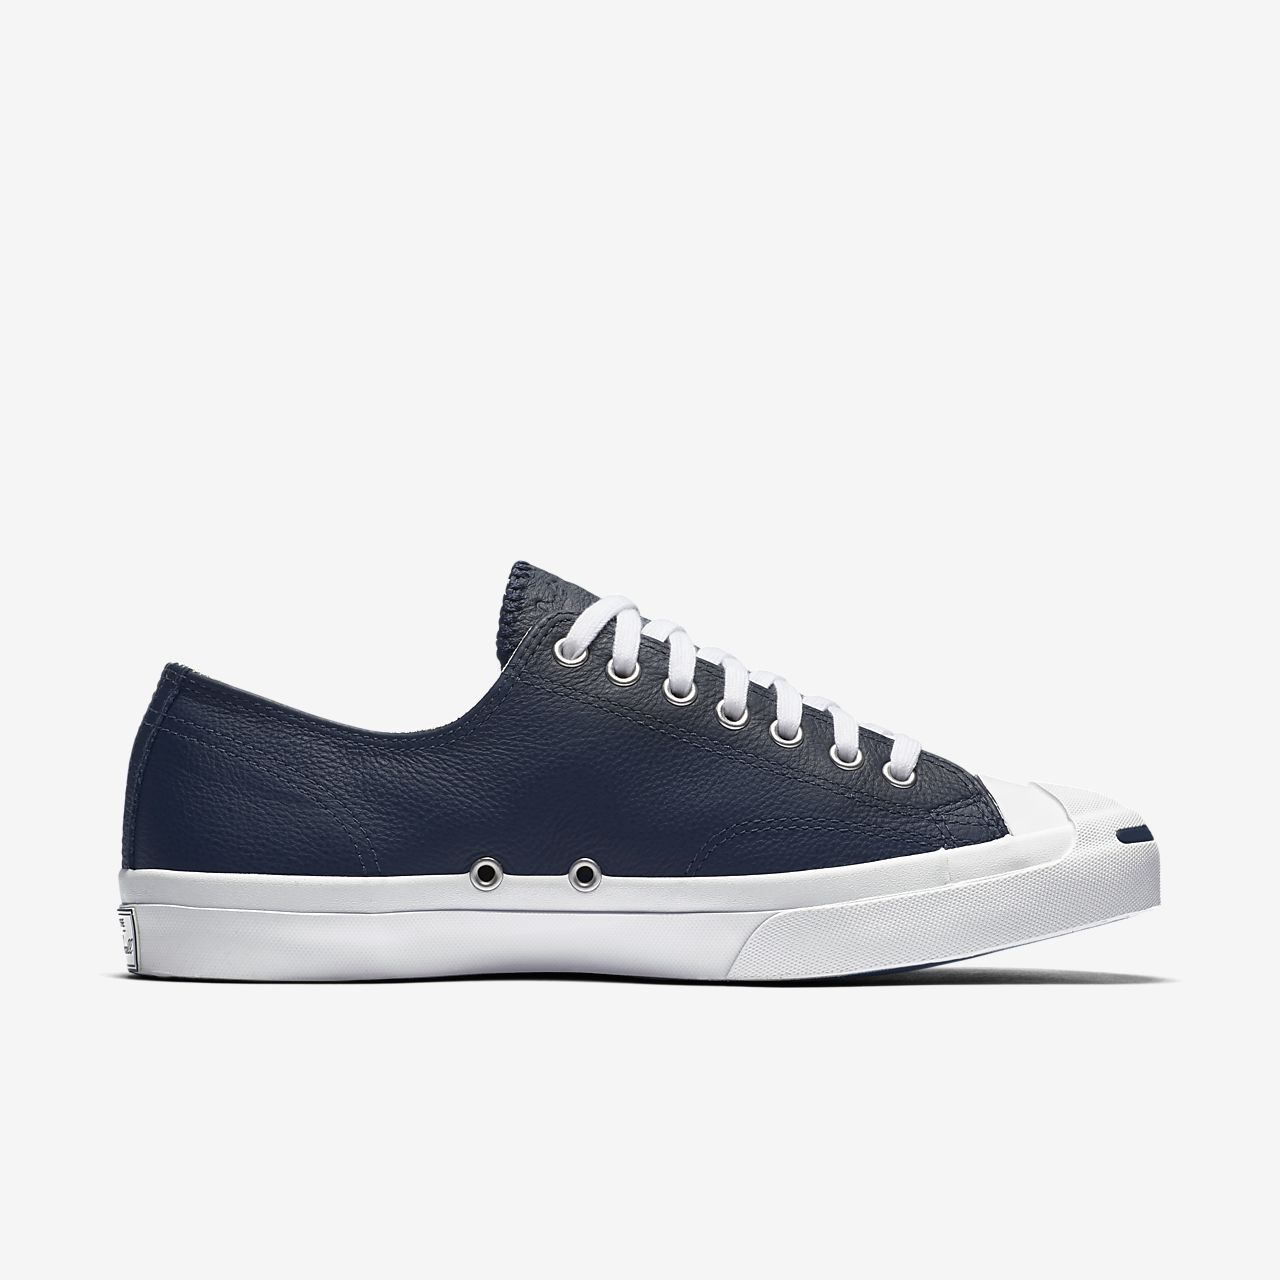 ... Converse Jack Purcell Leather Low Top Unisex Shoe